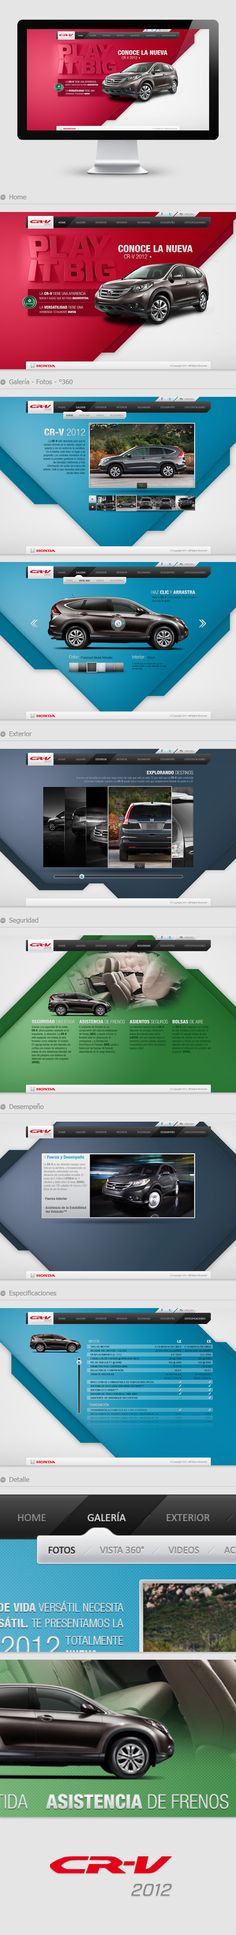 Cool Automotive Web Design on the Internet. Honda. #automotive #webdesign @ http://www.pinterest.com/alfredchong/automotive-web-design/